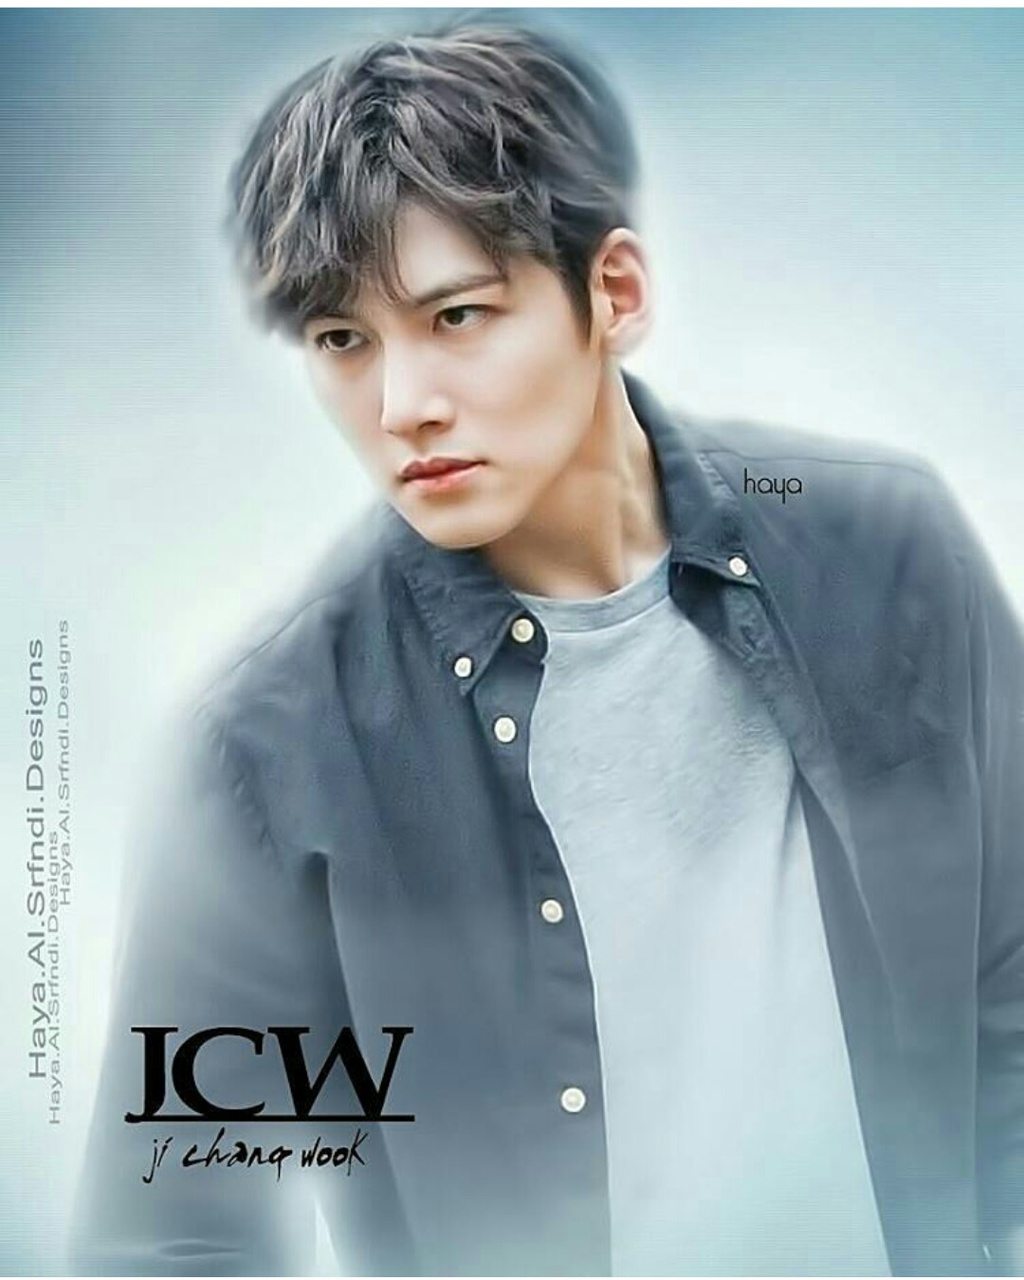 214 Images About Ji Chang Wook On We Heart It Cha Eun